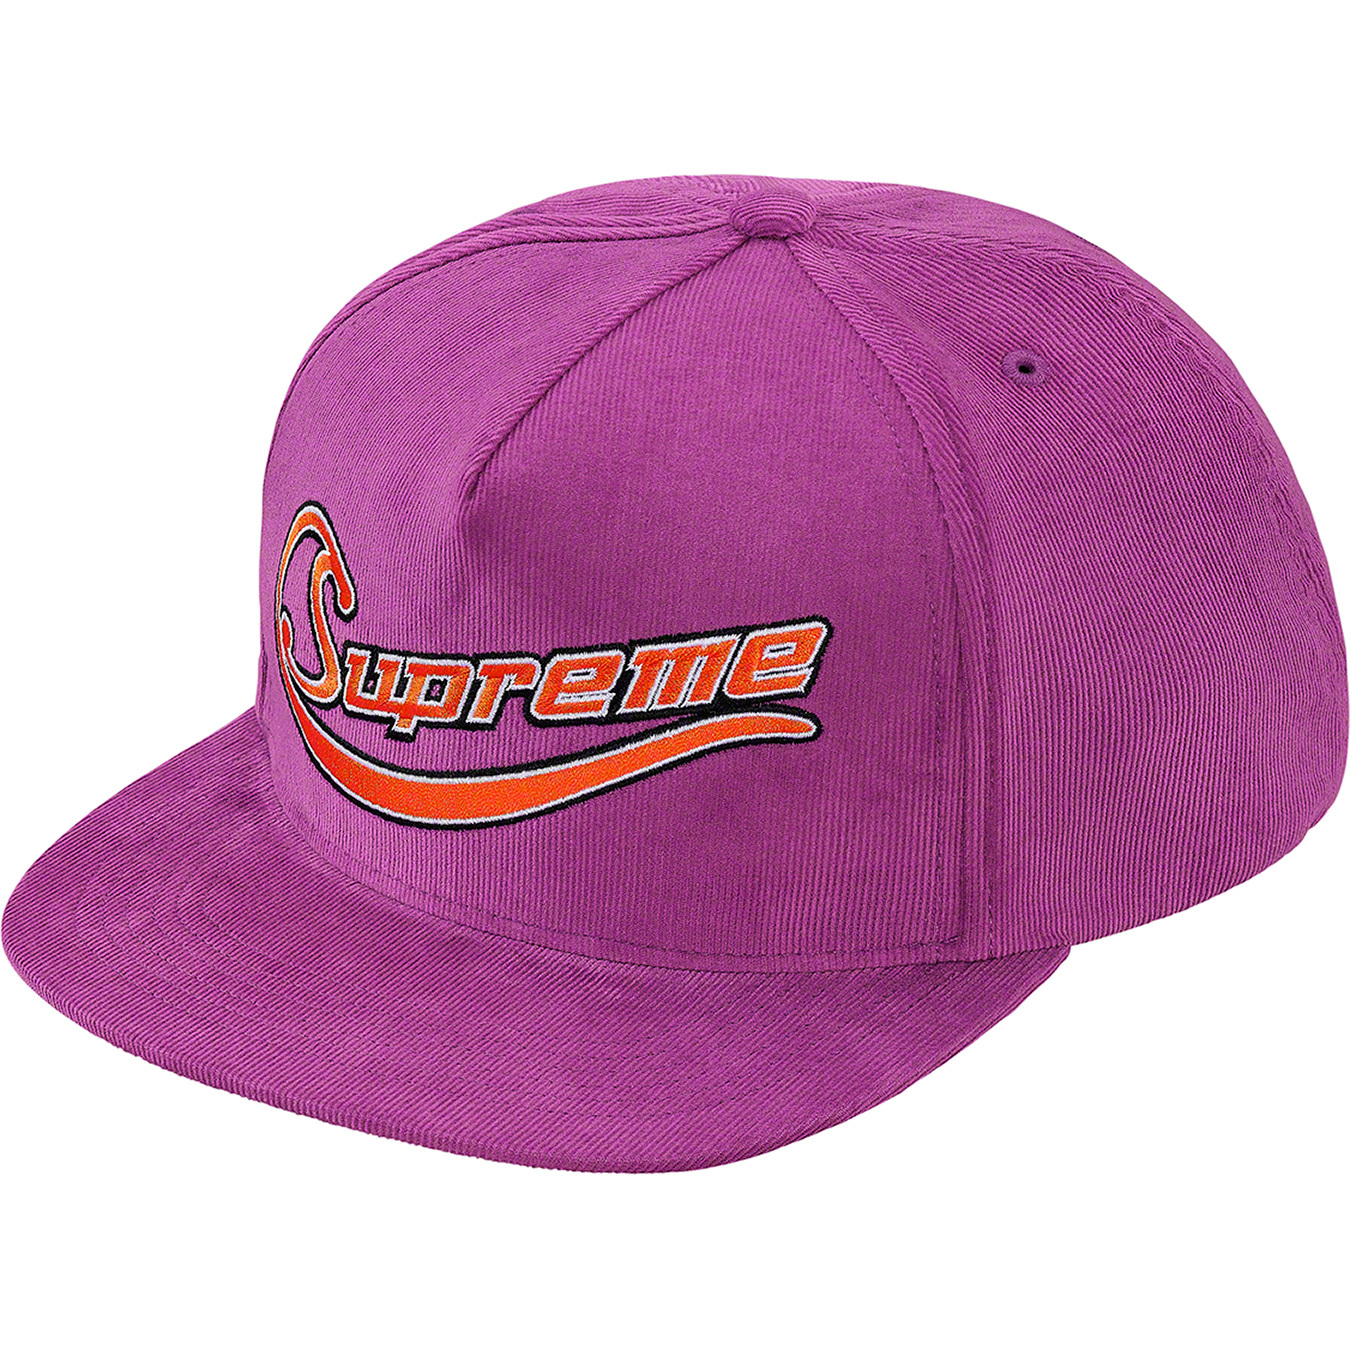 supreme-19ss-spring-summer-metallic-logo-corduroy-5-panel